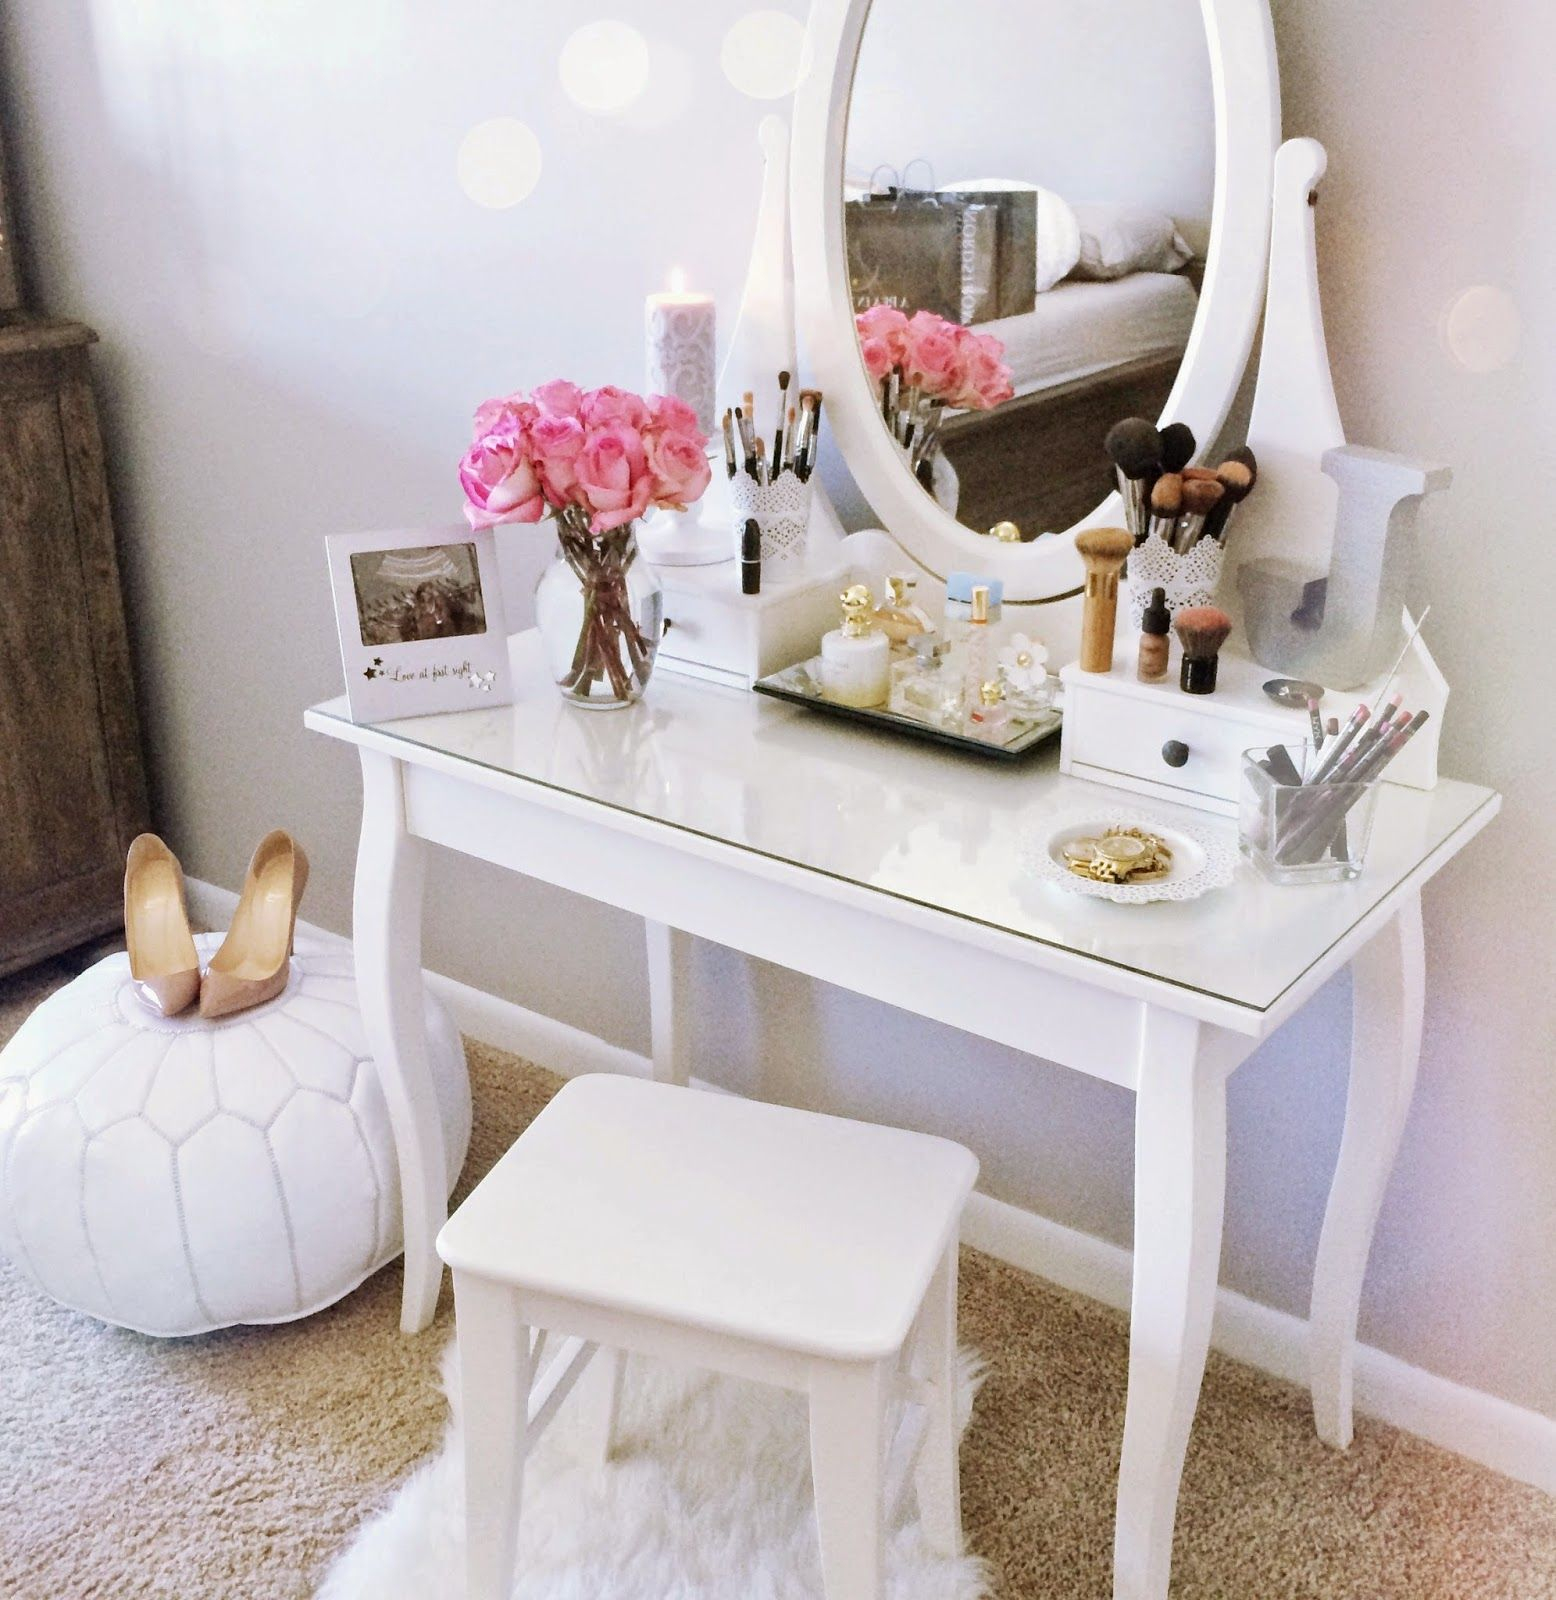 CLICK TO DOWNLOAD Your Elegant Makeup Beauty Room Look Book to see a  collection of amazing d cor and organization used and inspired by Top This  is a great. Acho uma  tima ideia para meu quarto na Calif rnia   Decor